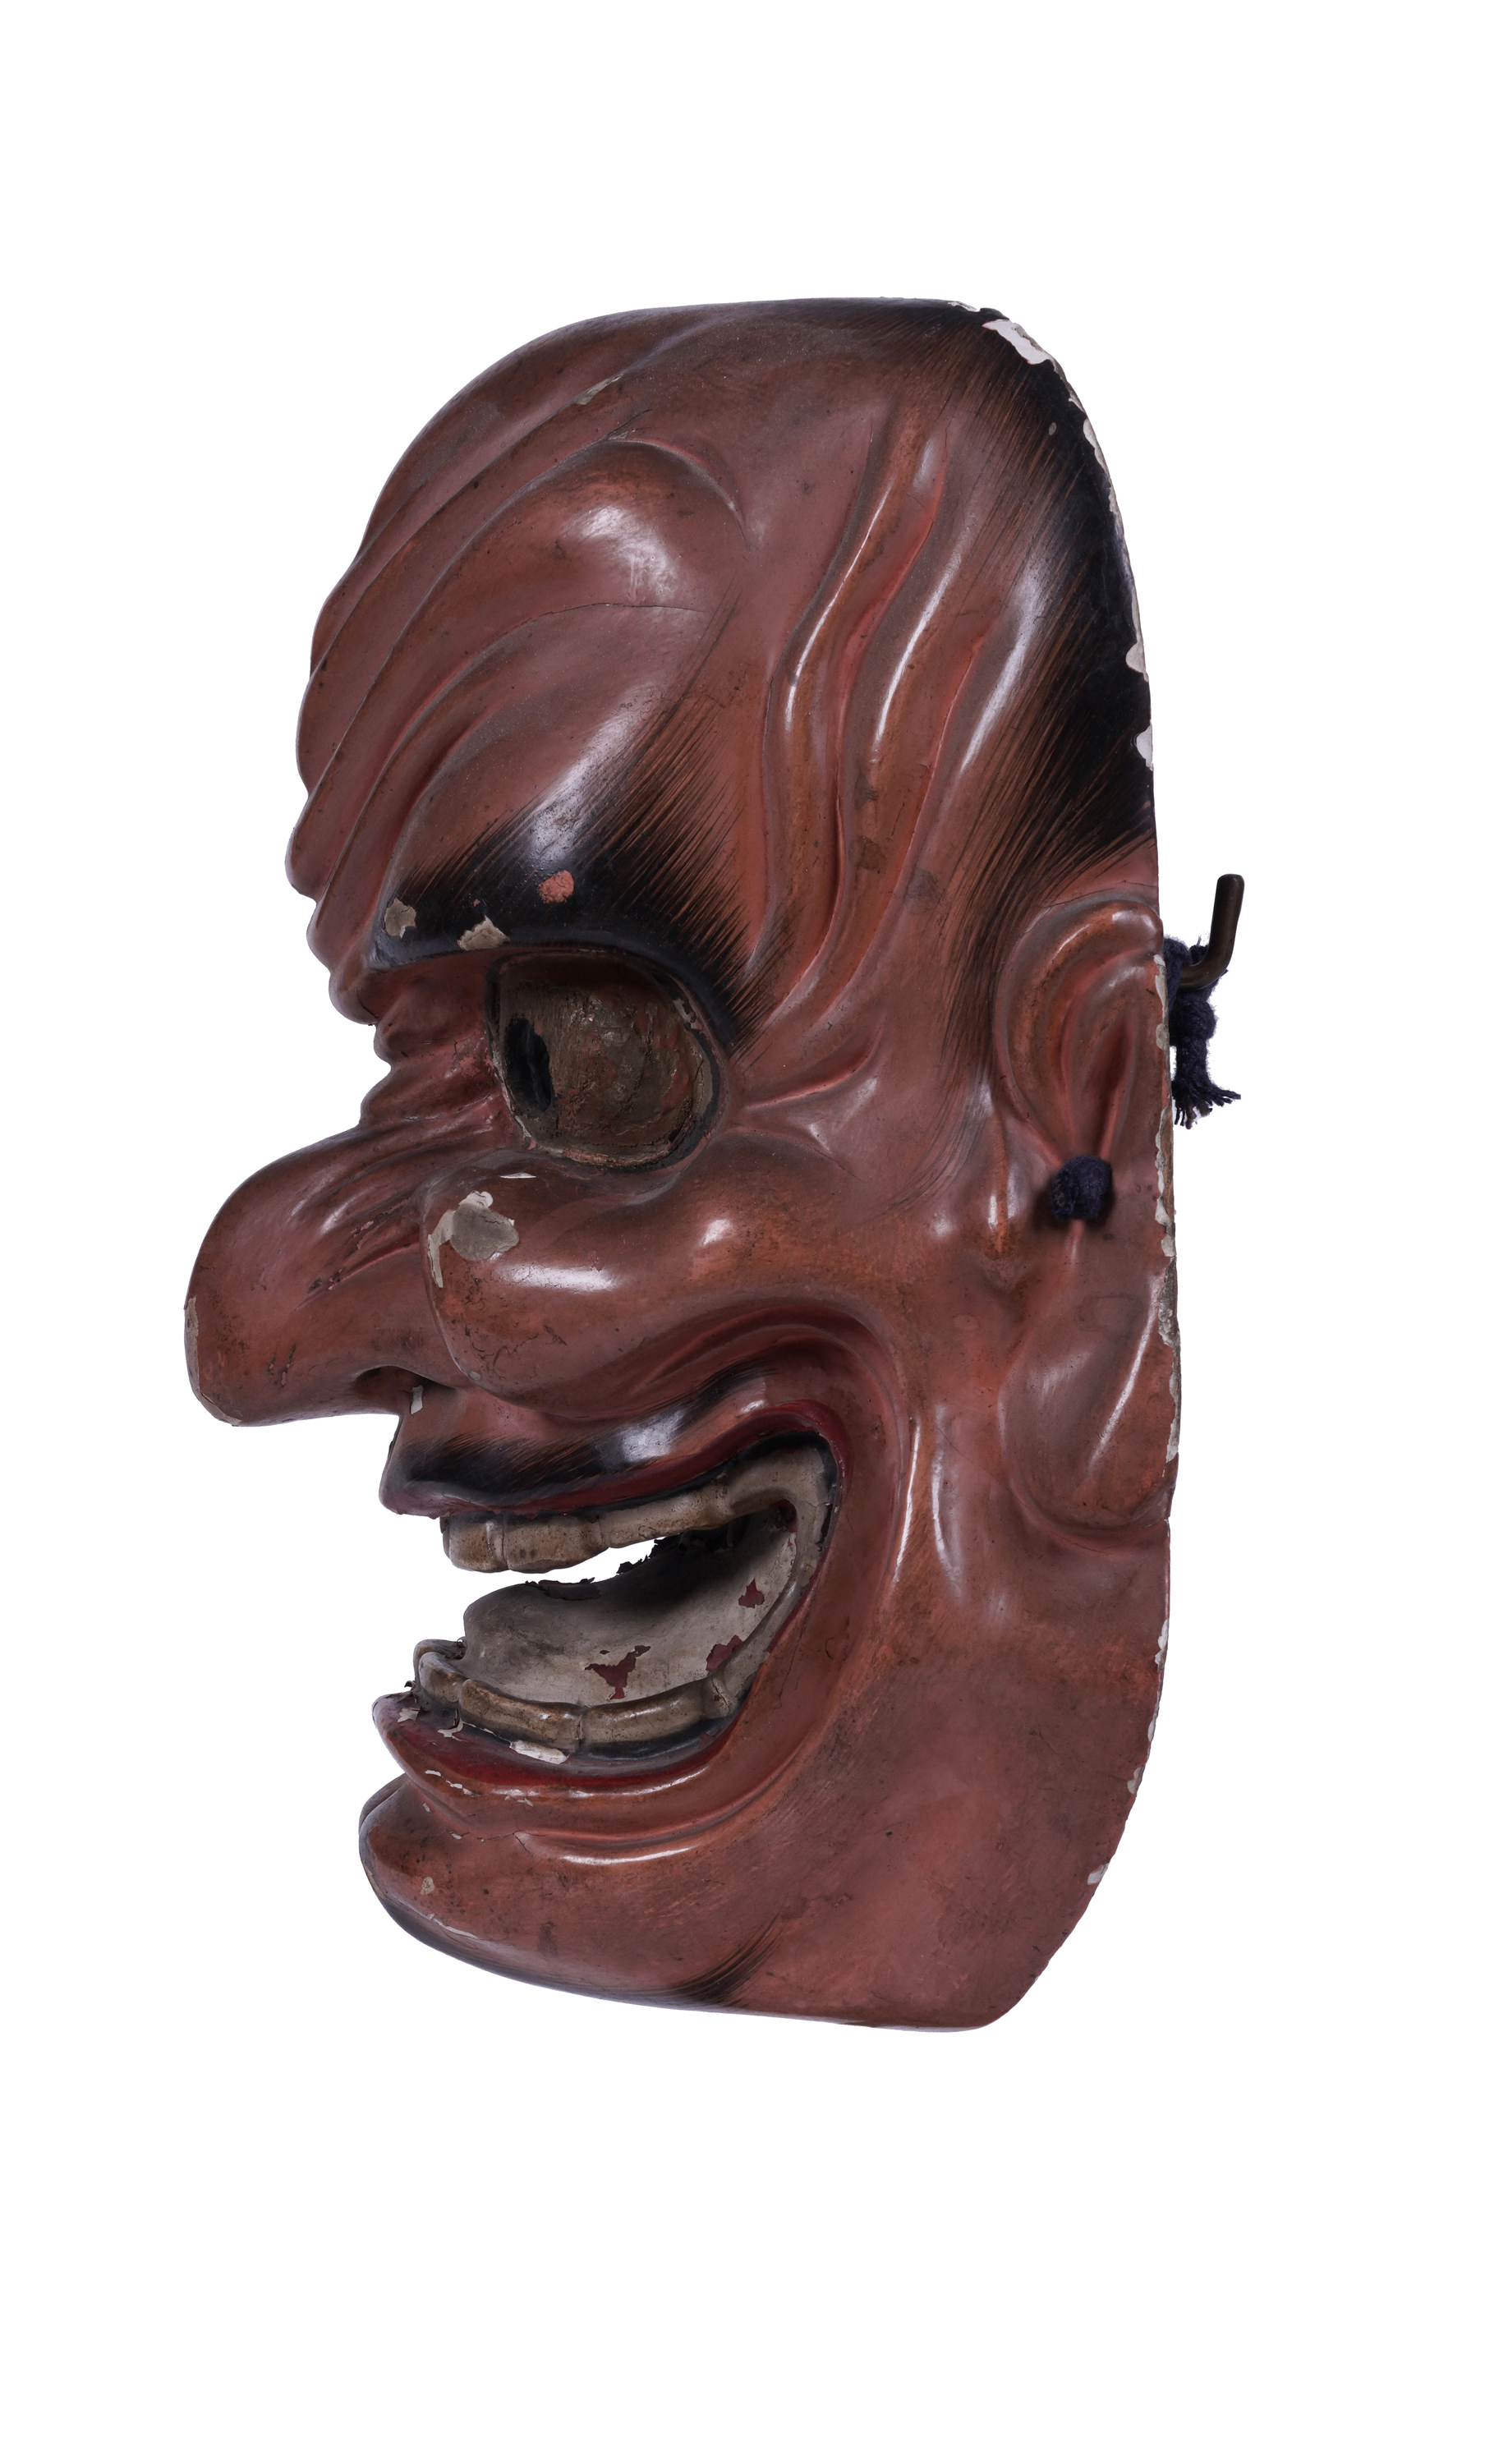 .A SIGNED RED LACQUERED WOODEN MASK Japan, 19th century The inner part bearing a signature. H: 26, - Image 2 of 6